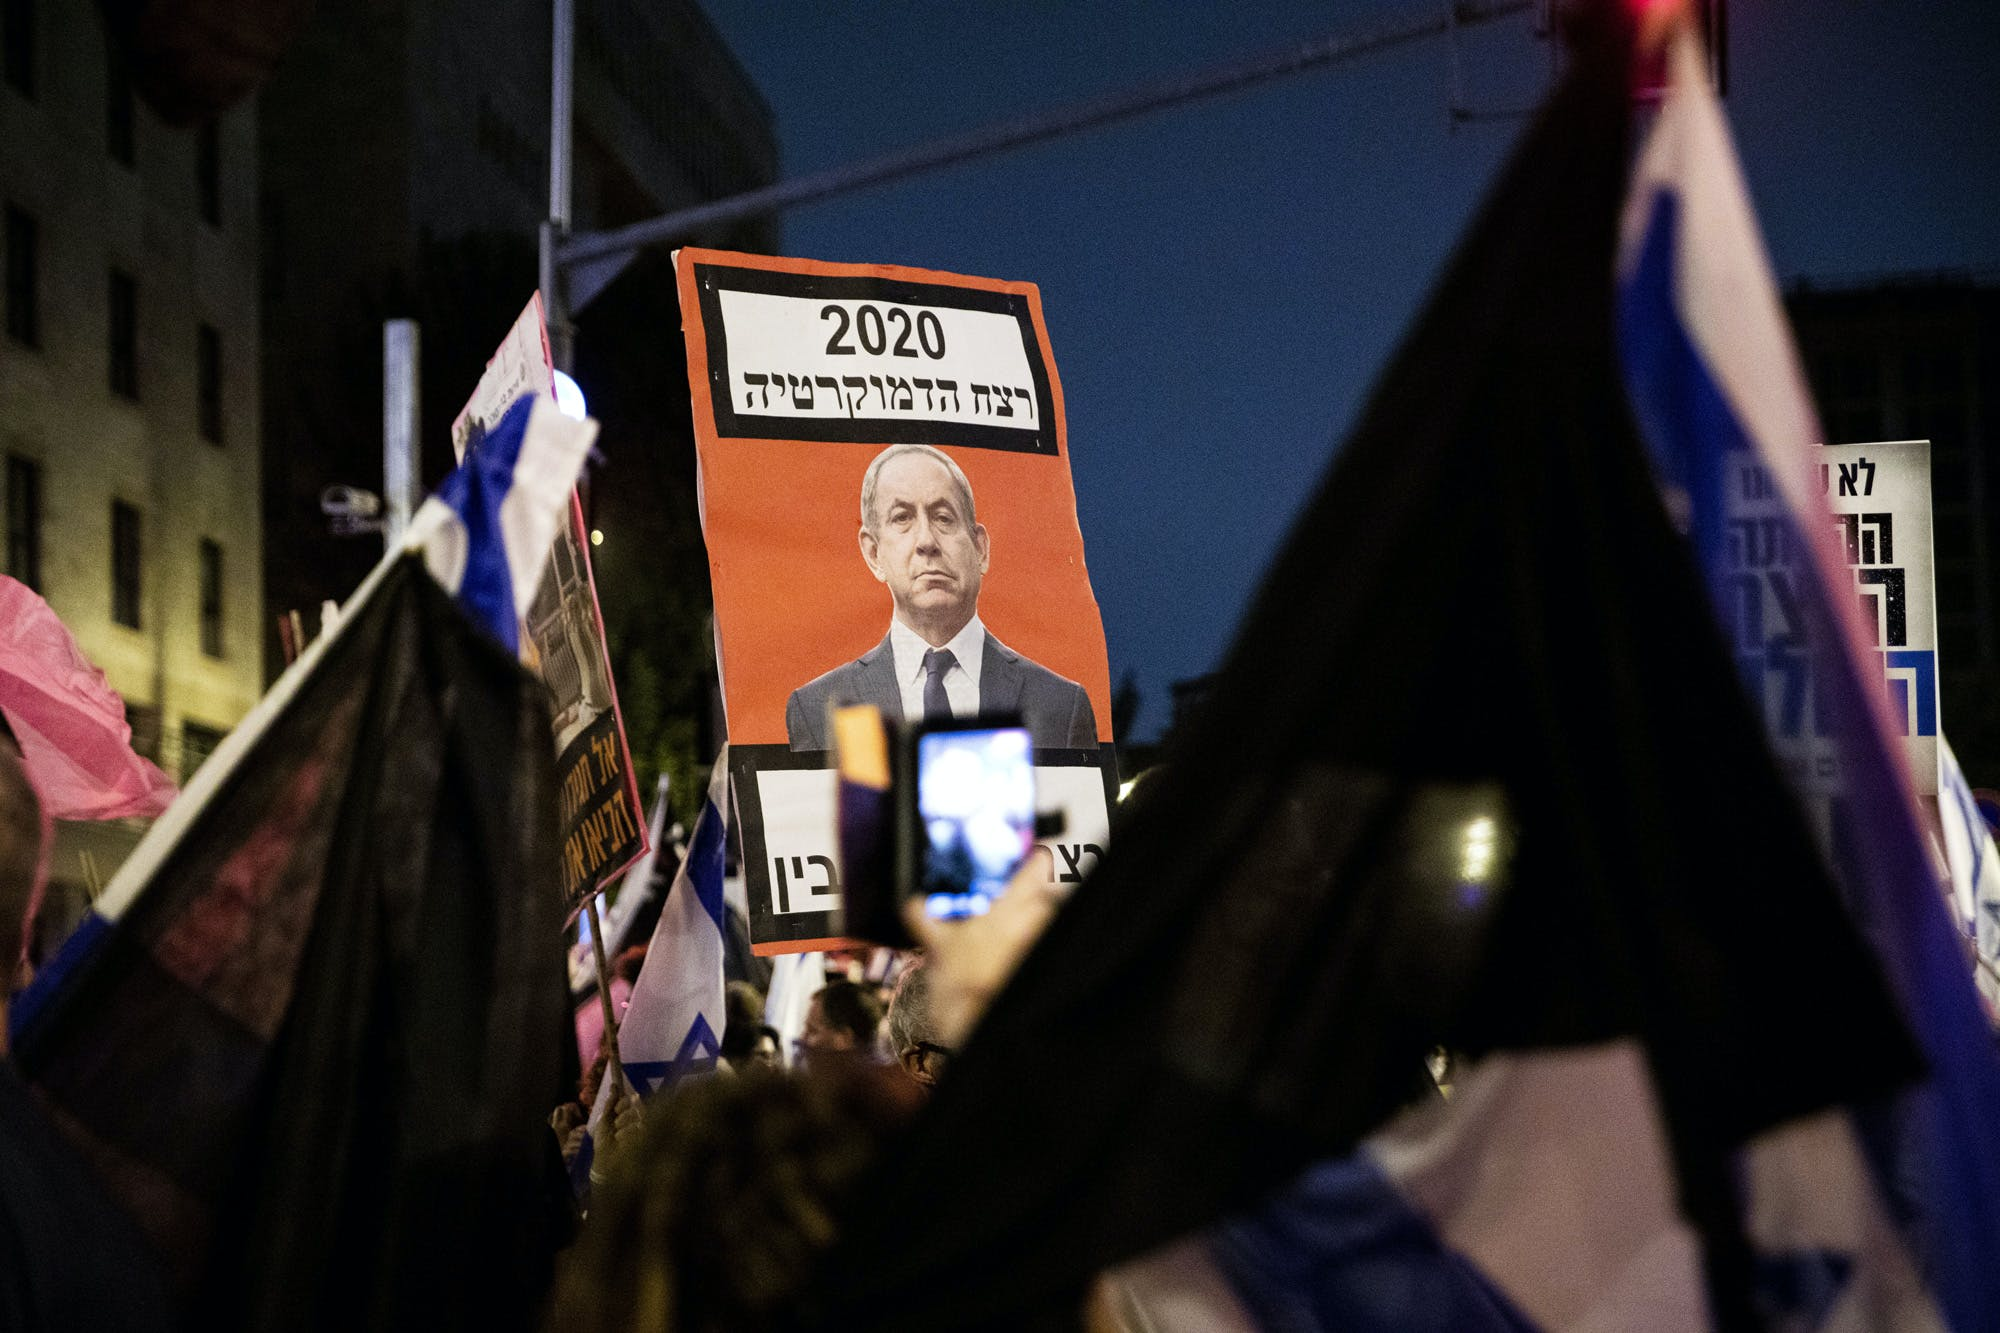 JERUSALEM - OCTOBER 31: Israeli protestors gather on Saturday night in protest against Prime Minister Benjamin Netanyahu demanding his resignation over corruption cases and his failure to combat the new type of coronavirus (Covid-19) pandemic in West Jerusalem on October 31, 2020. (Photo by Mostafa Alkharouf/Anadolu Agency via Getty Images)